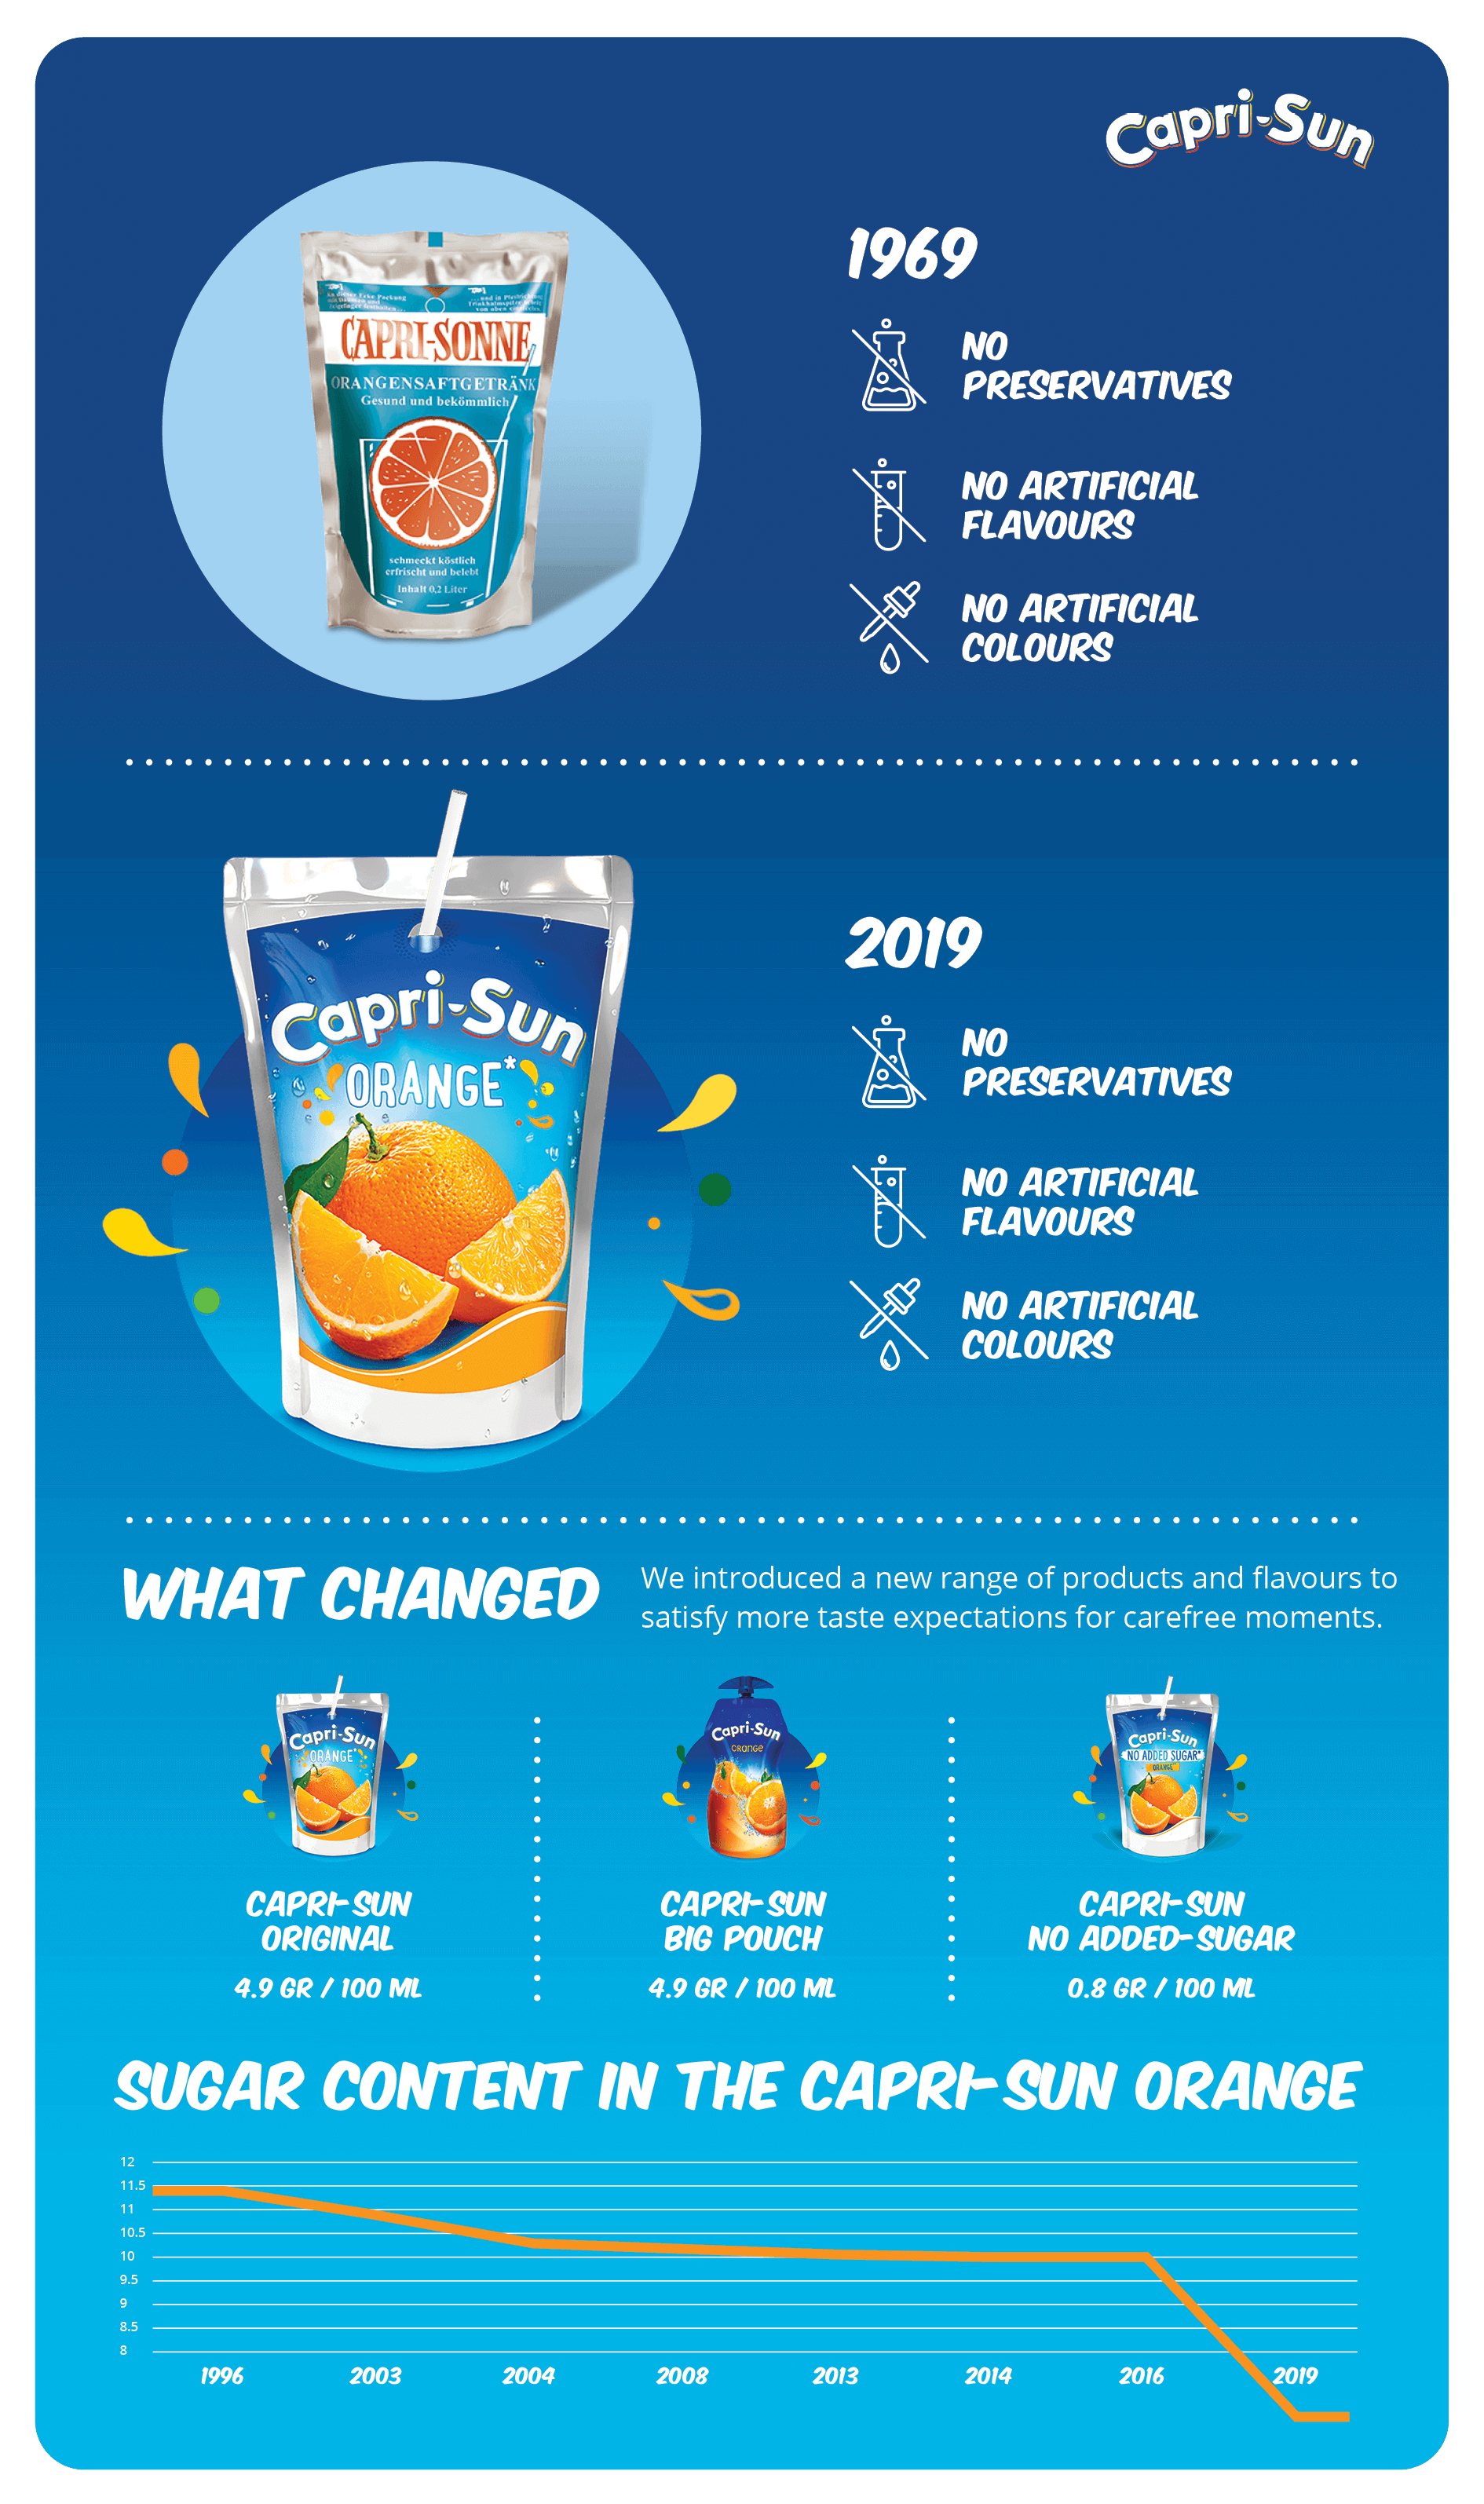 Overview of the Capri-Sun reduction journey.